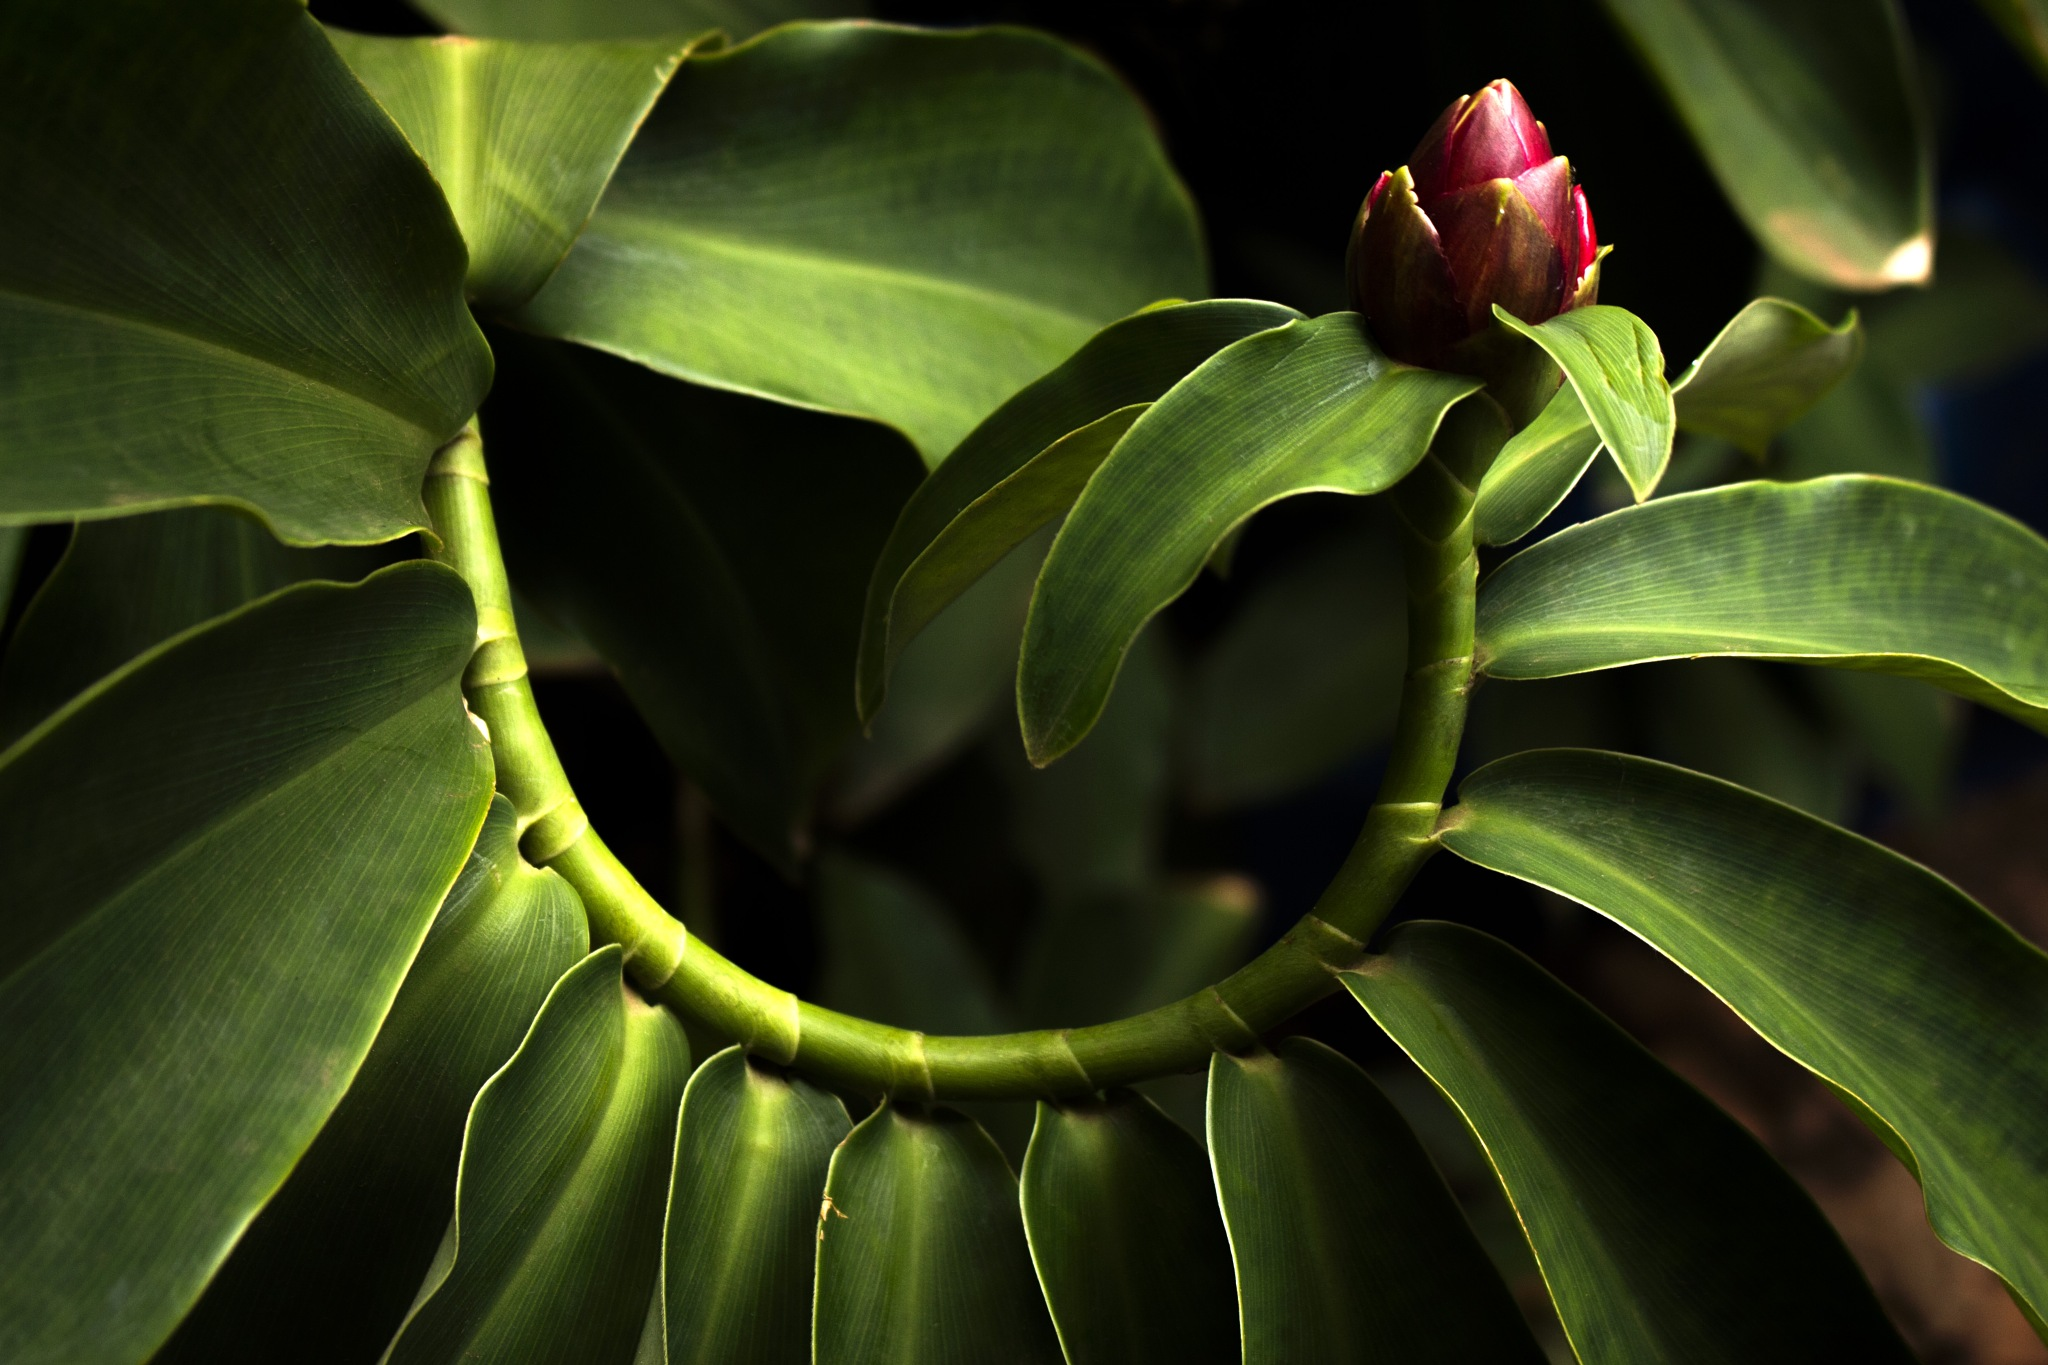 The nature exhibiting its curves by Nitt Marques